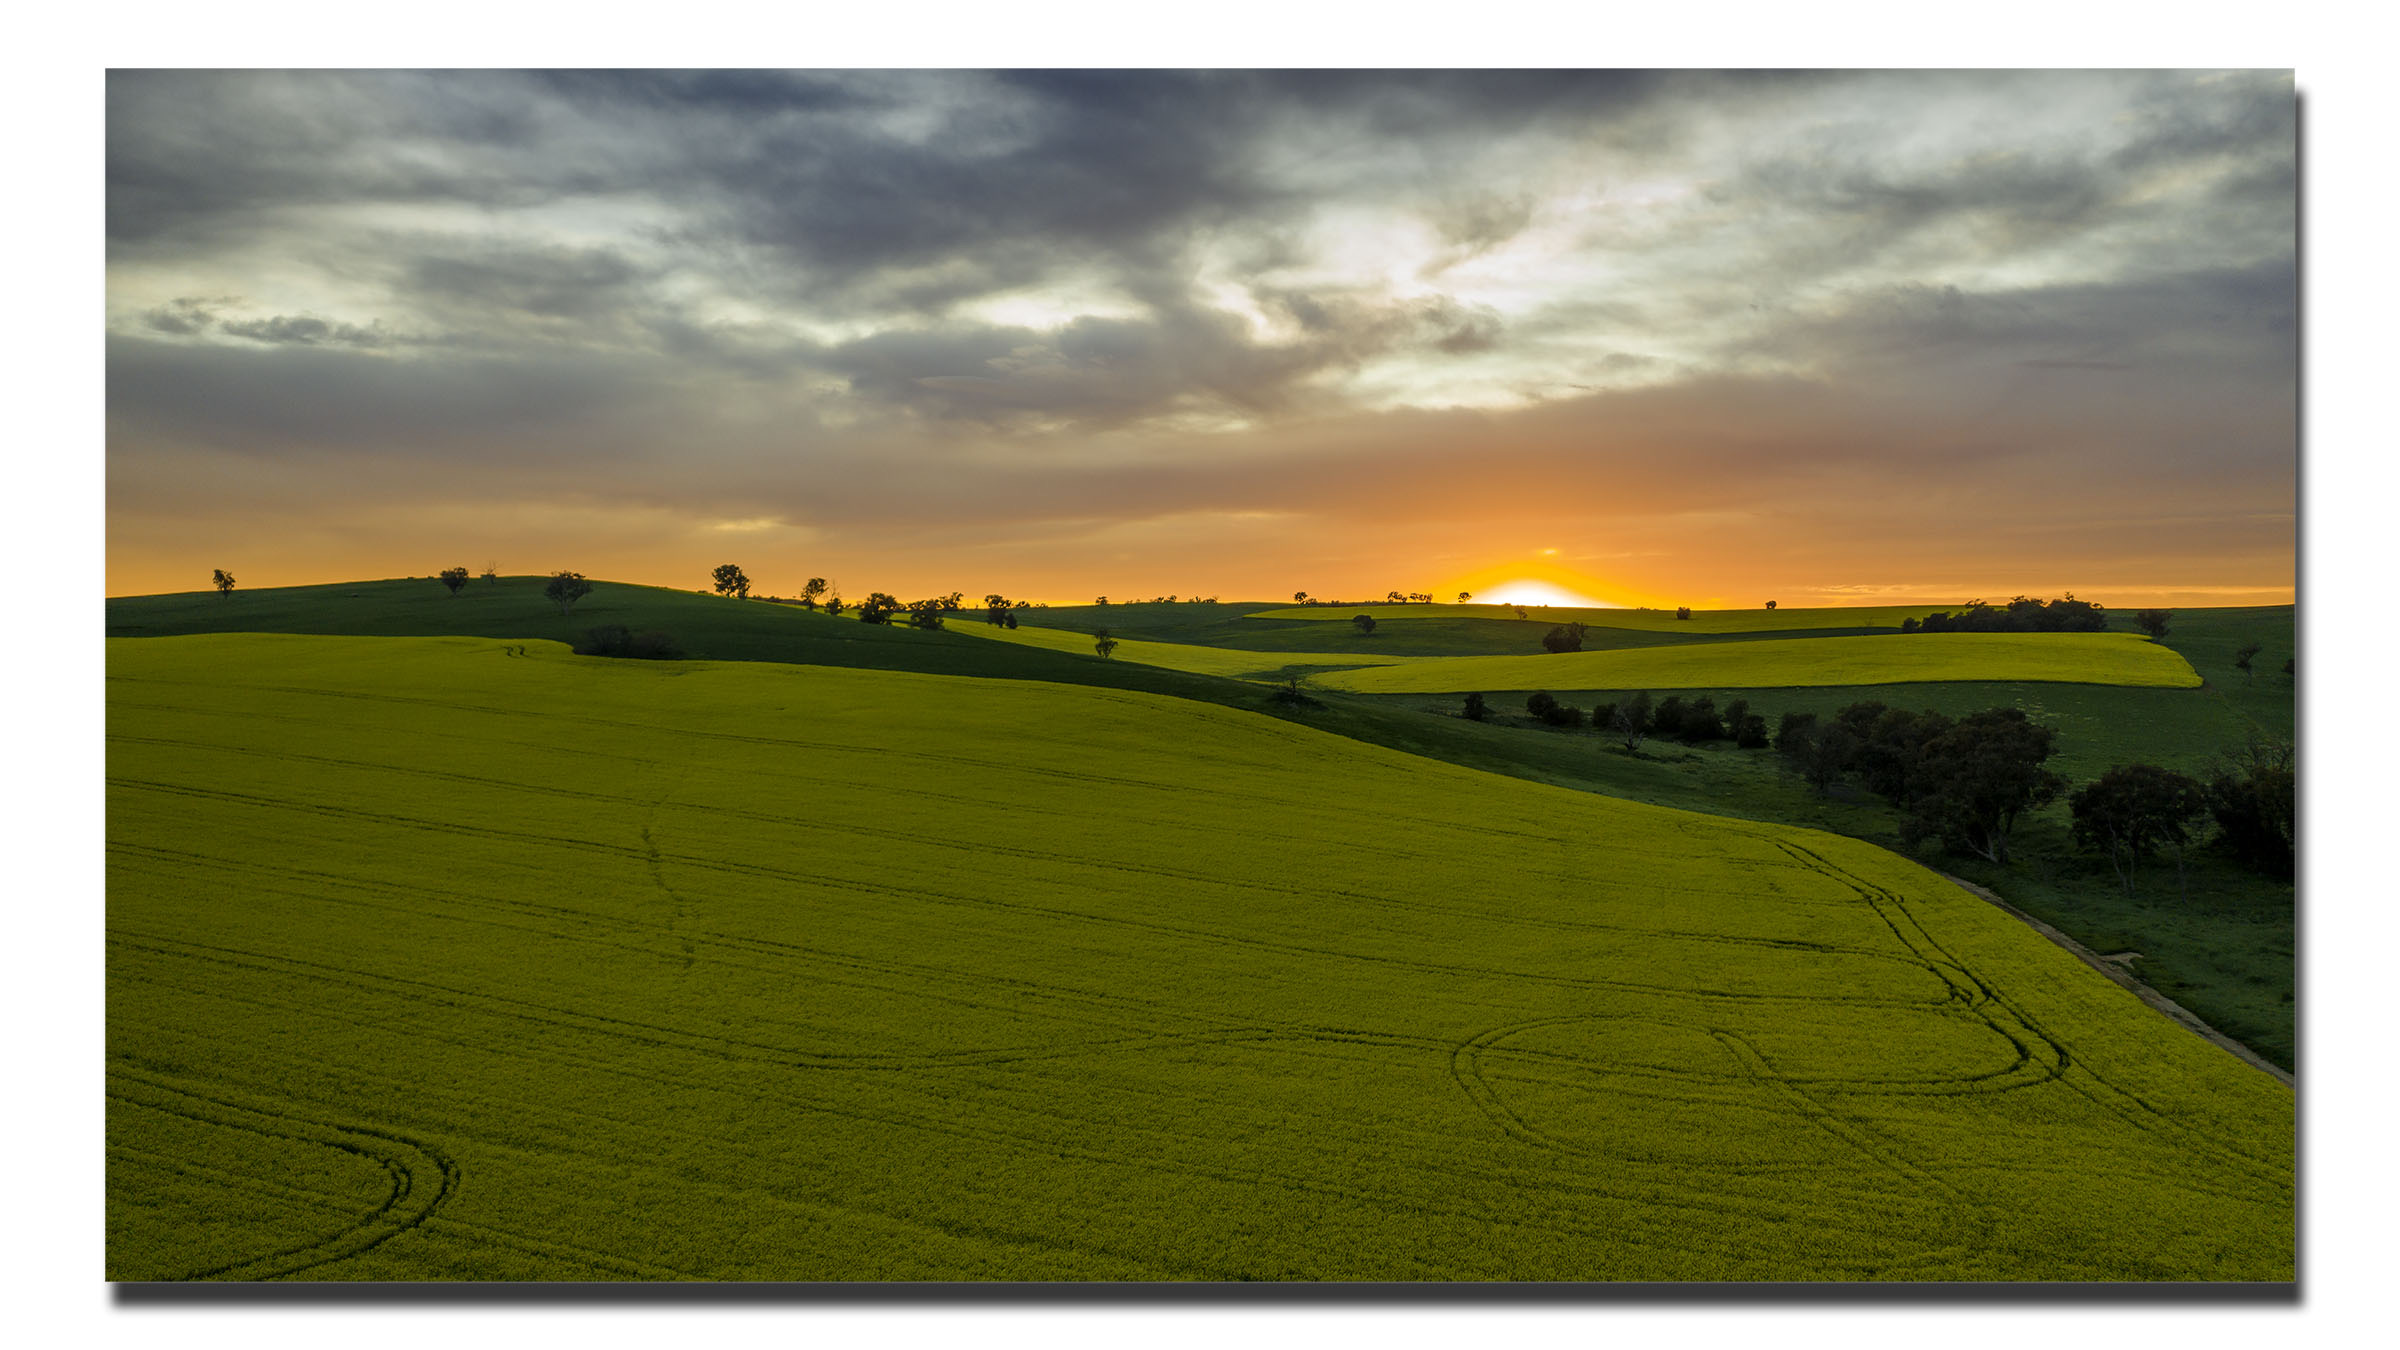 Dawn on the Canola